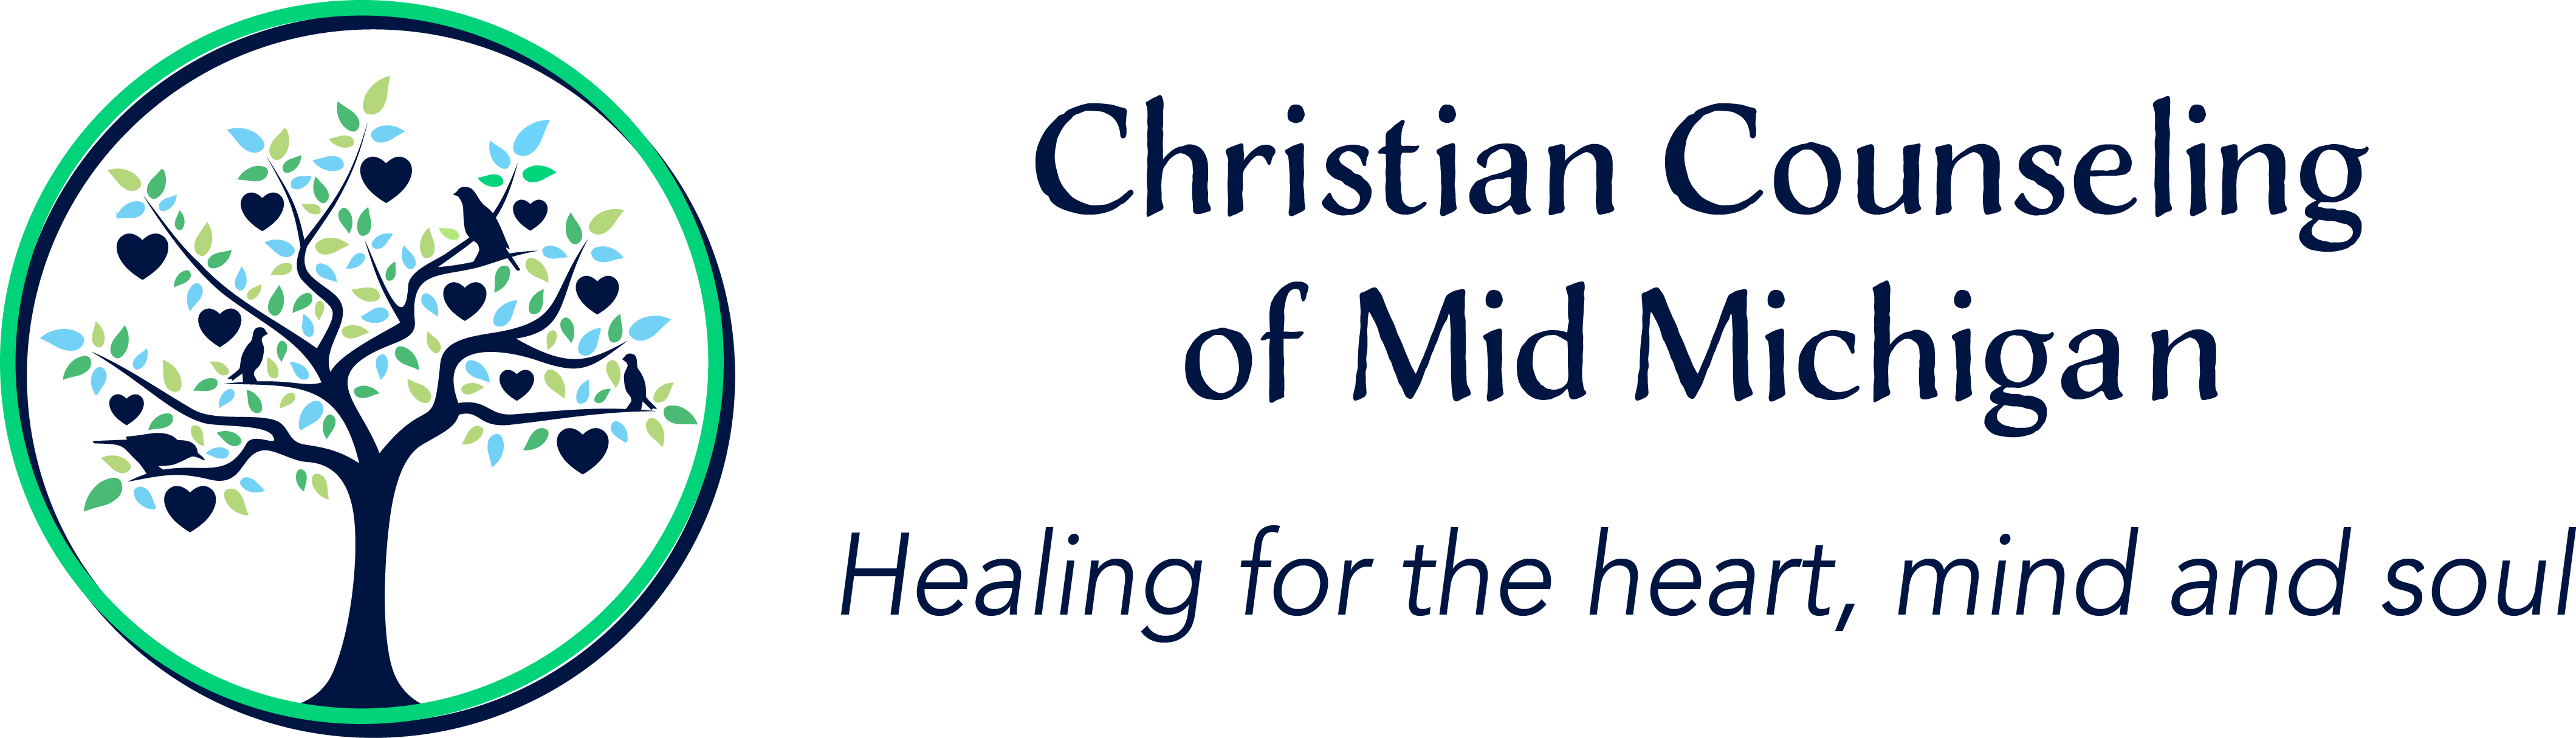 Christian Counseling of Mid Michigan